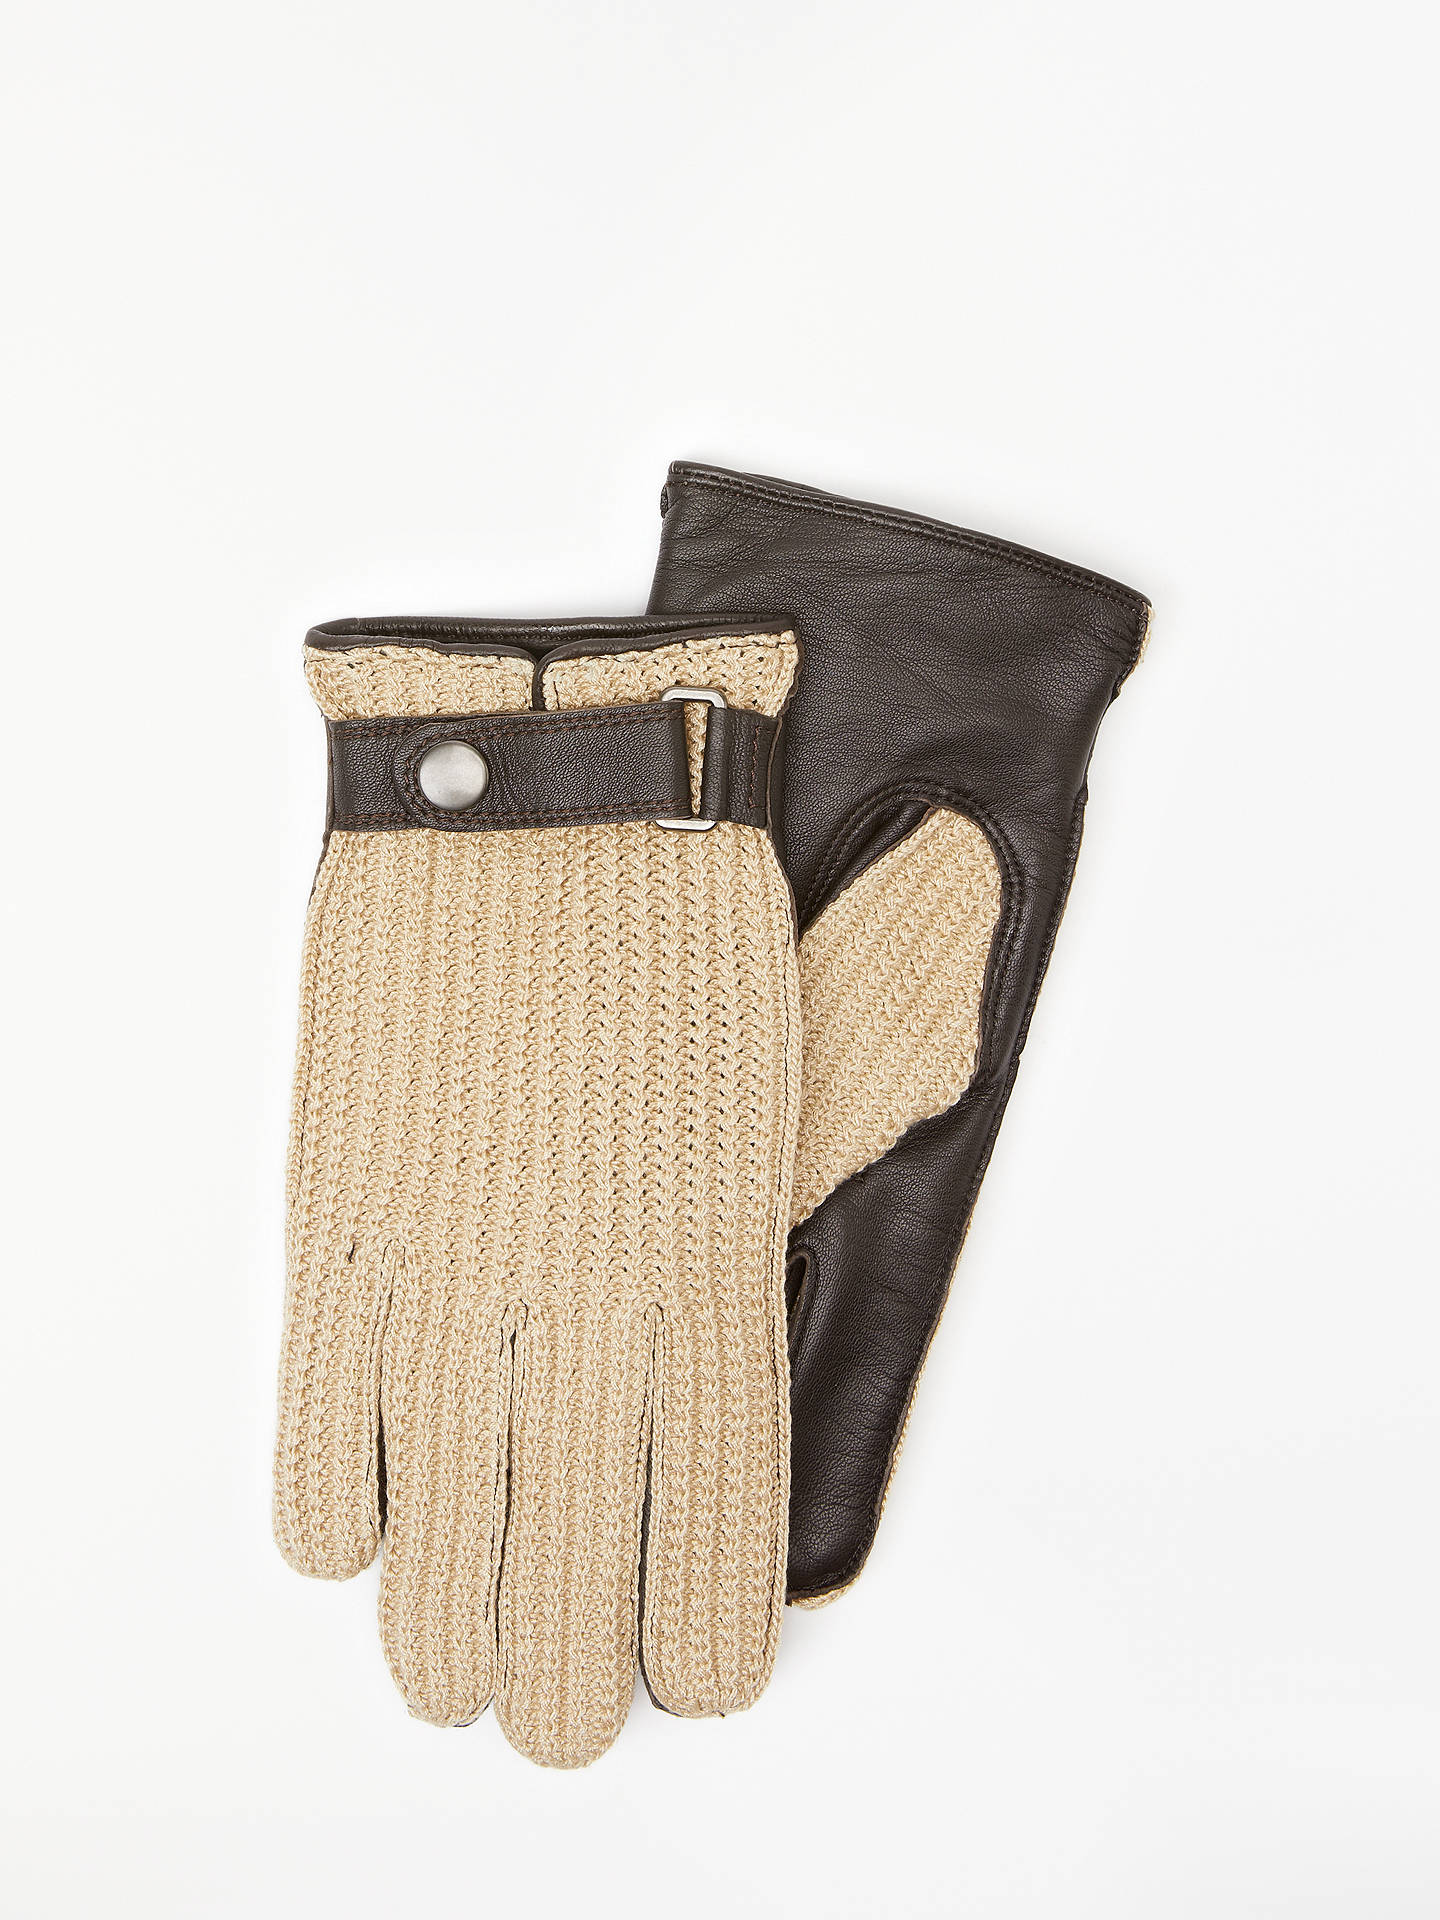 BuyJohn Lewis & Partners Crochet Back Leather Gloves, Brown, L Online at johnlewis.com